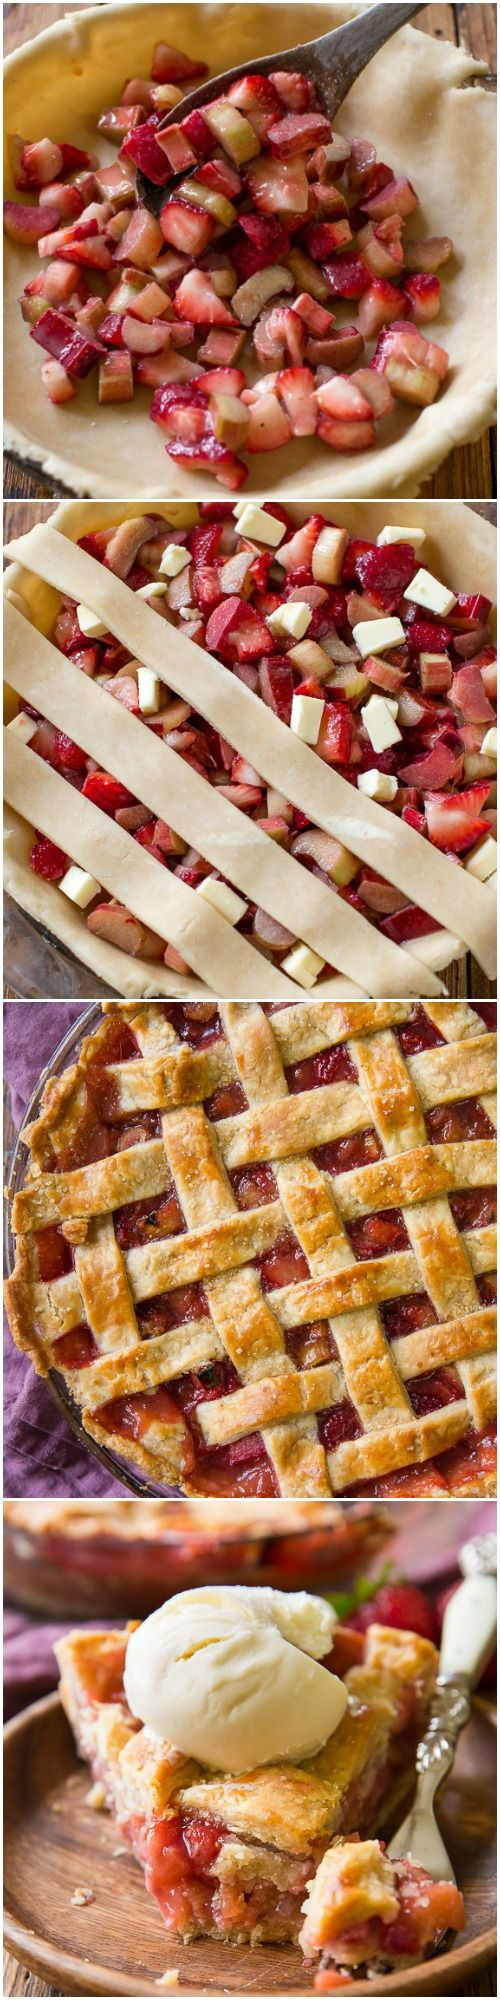 Learn how to make strawberry rhubarb pie that holds its shape! Along with the flakiest, most buttery perfect homemade pie crust recipe! sallysbakingaddiction.com